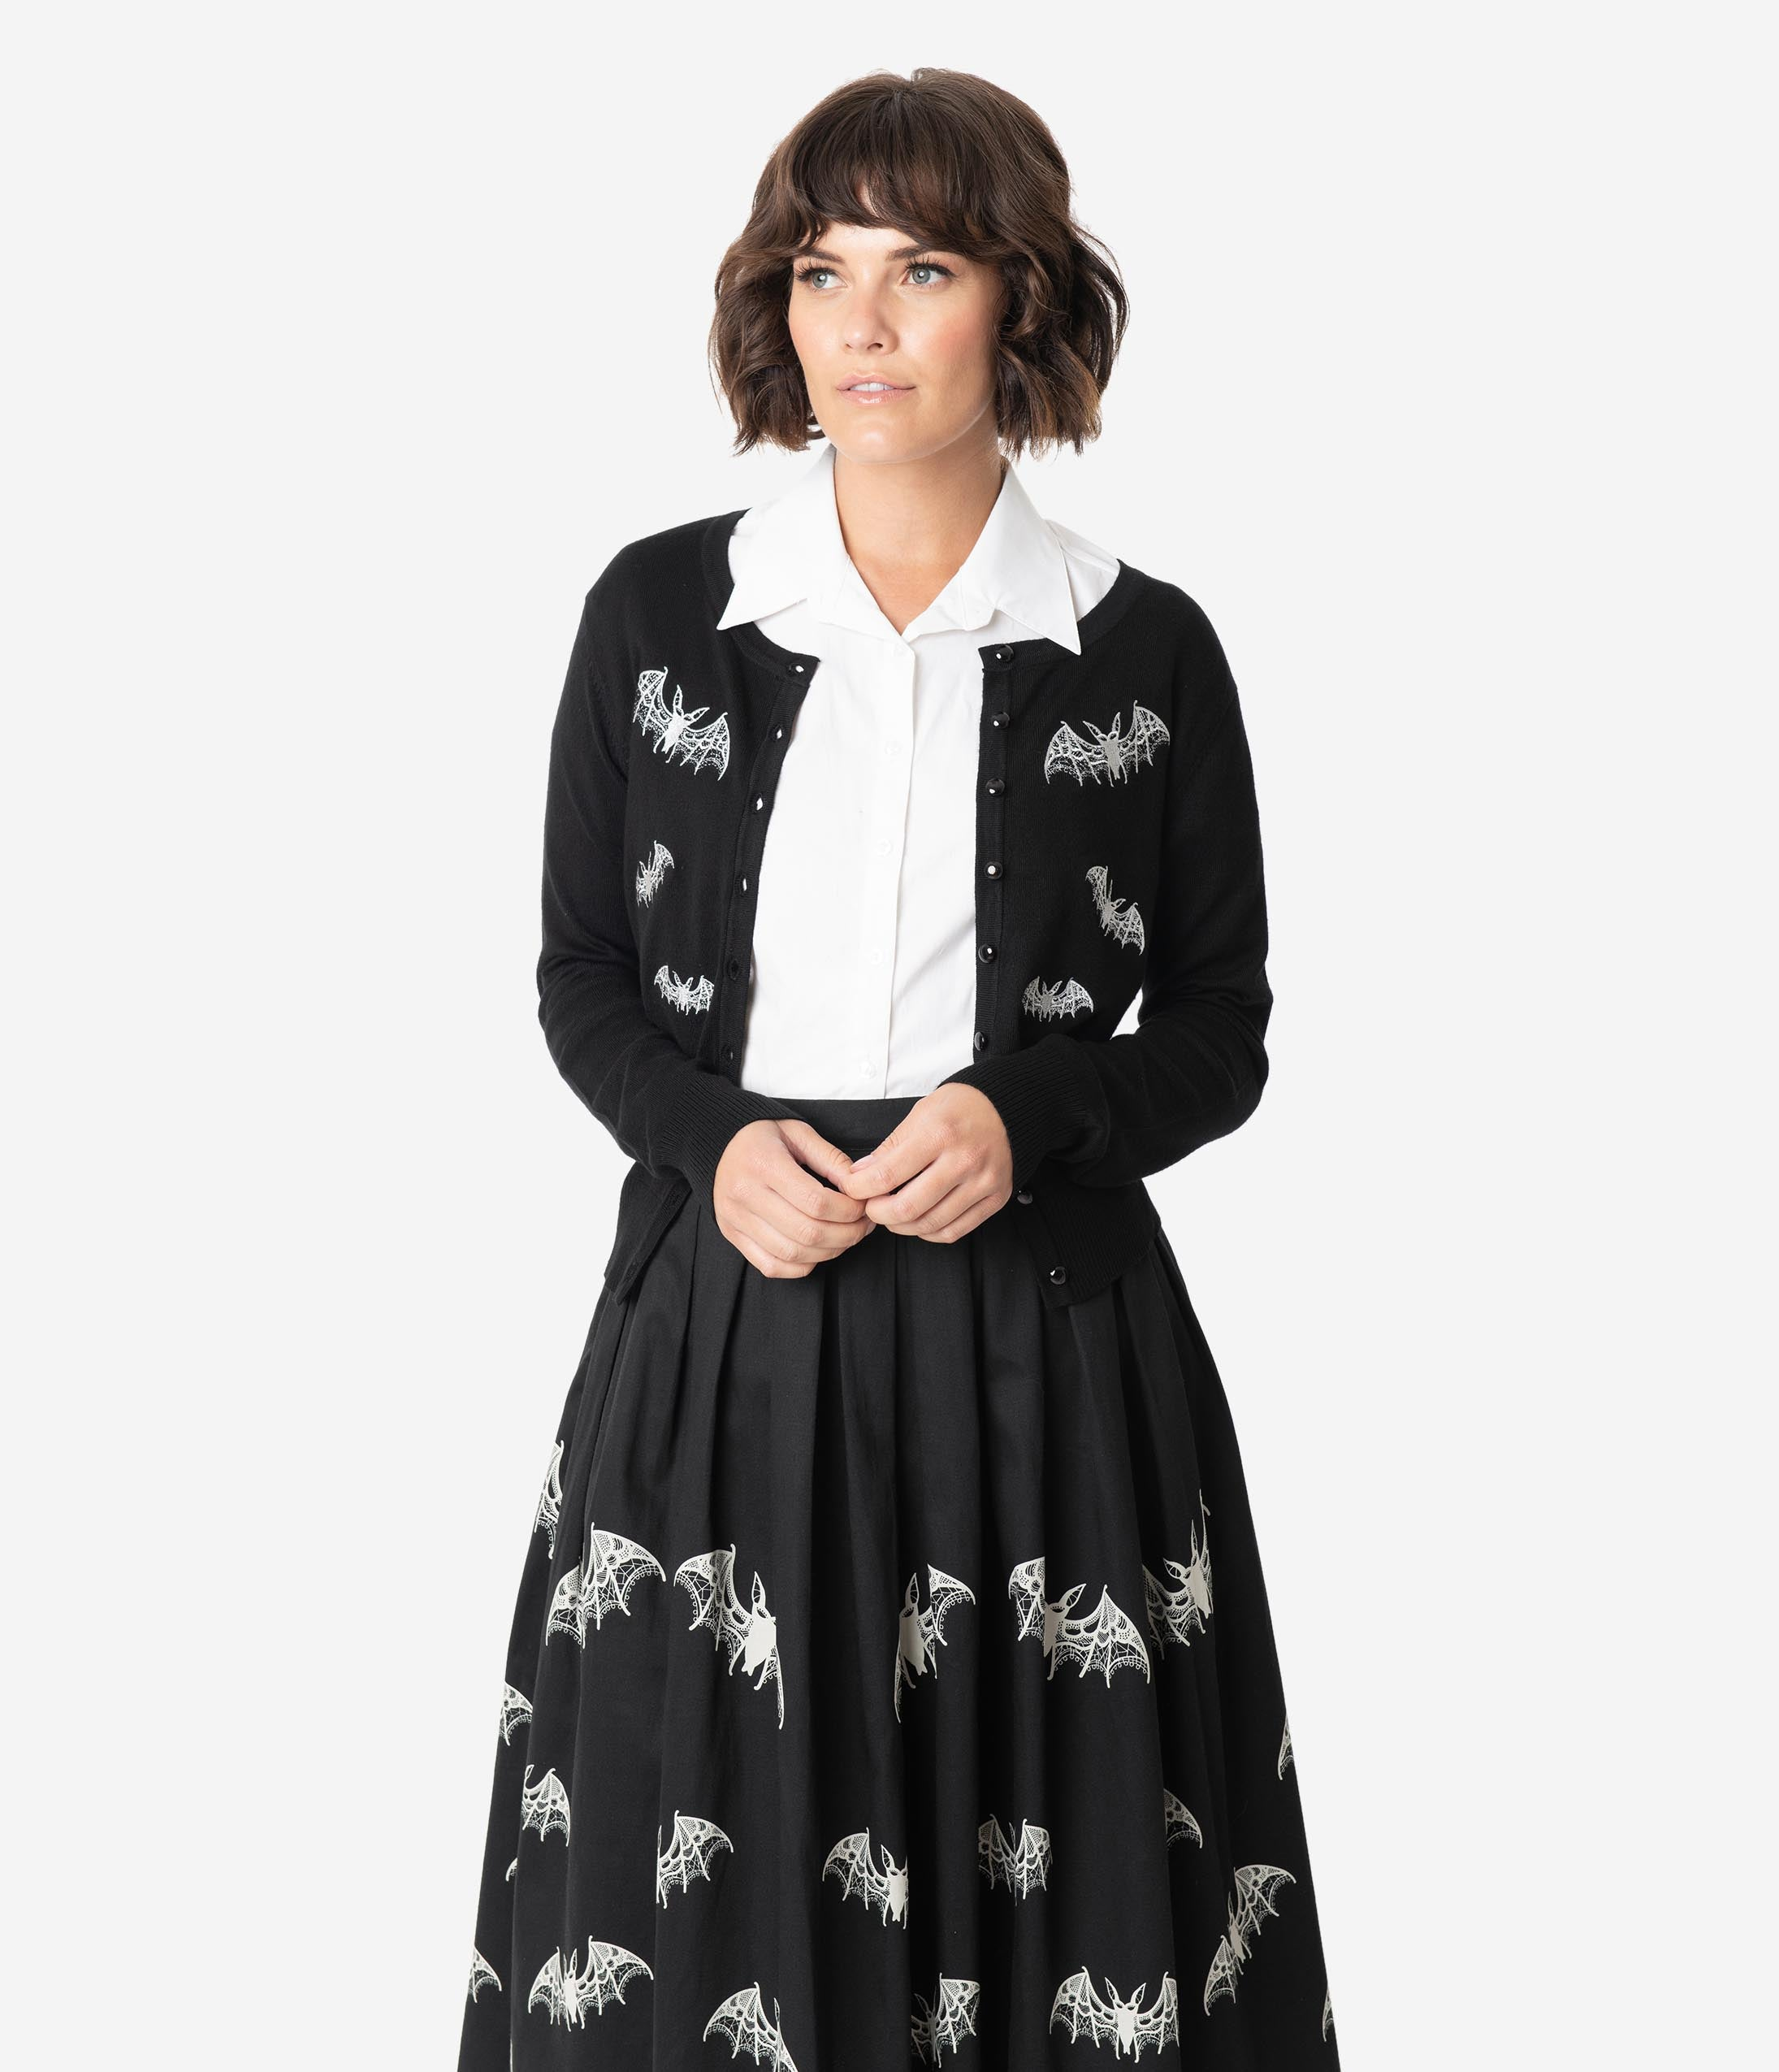 Easy Retro Halloween Costumes – Last Minute Ideas Retro Style Black  Ivory Embroidered Bats Knit Cardigan $48.00 AT vintagedancer.com